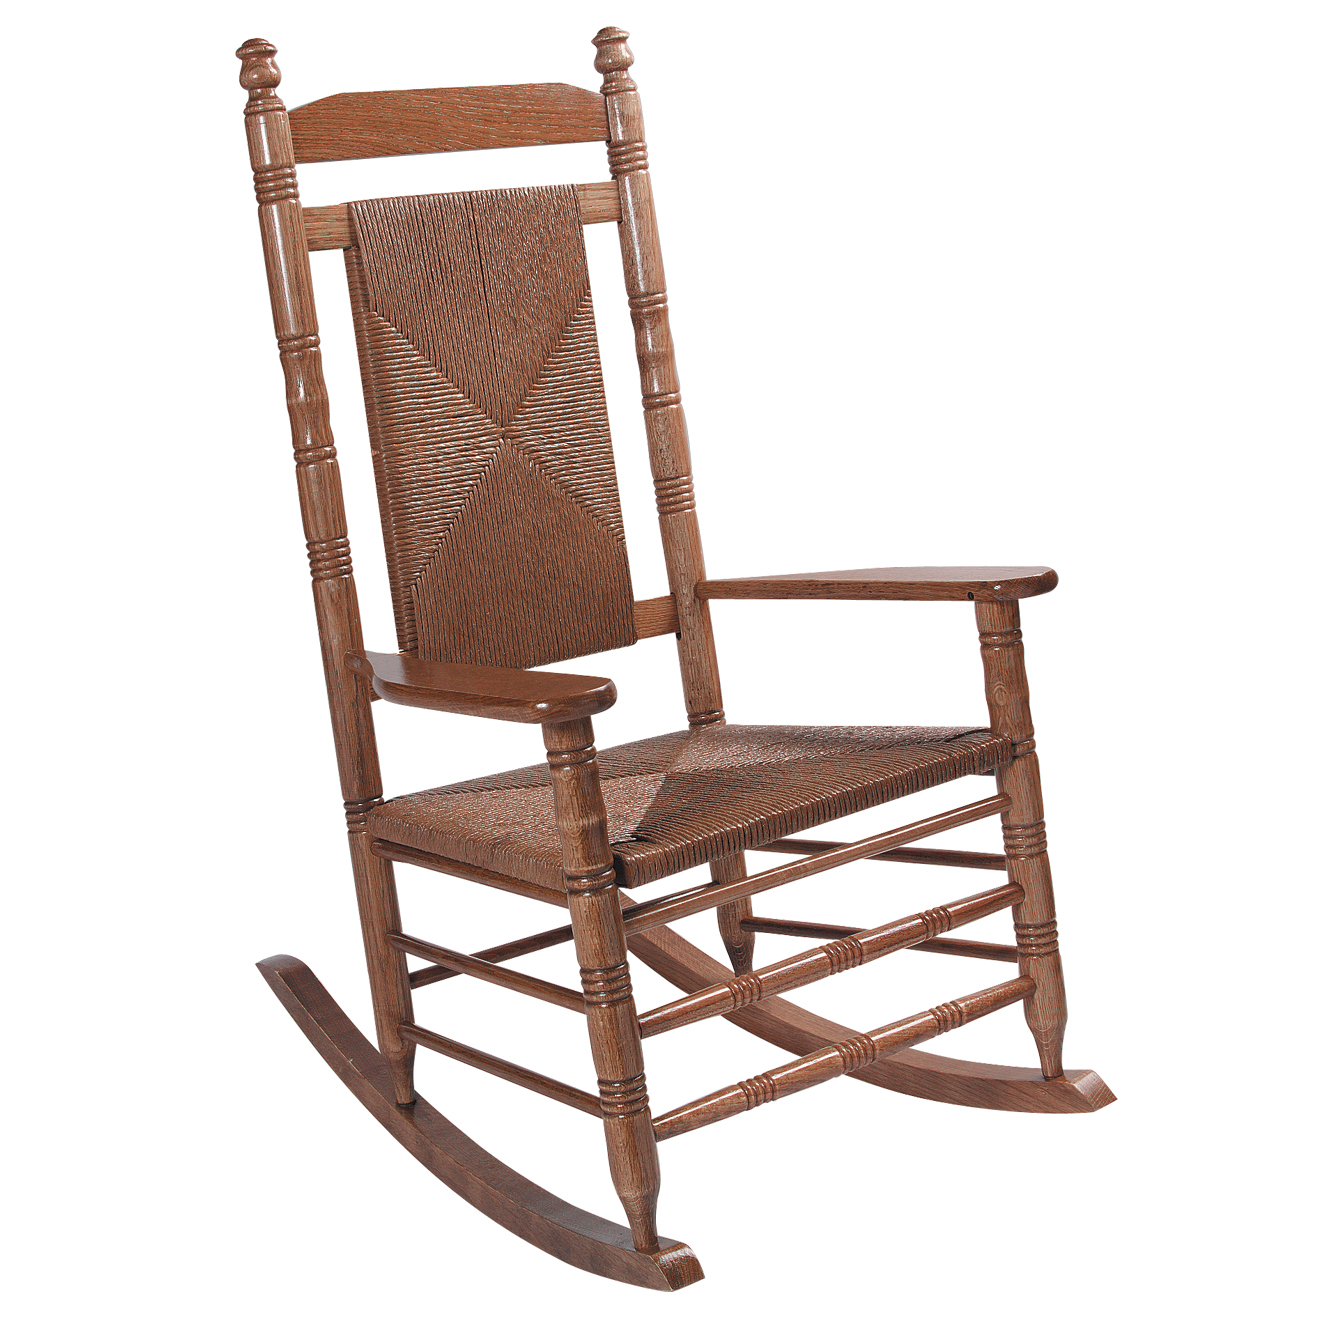 Woven Seat Rocking Chair   Hardwood